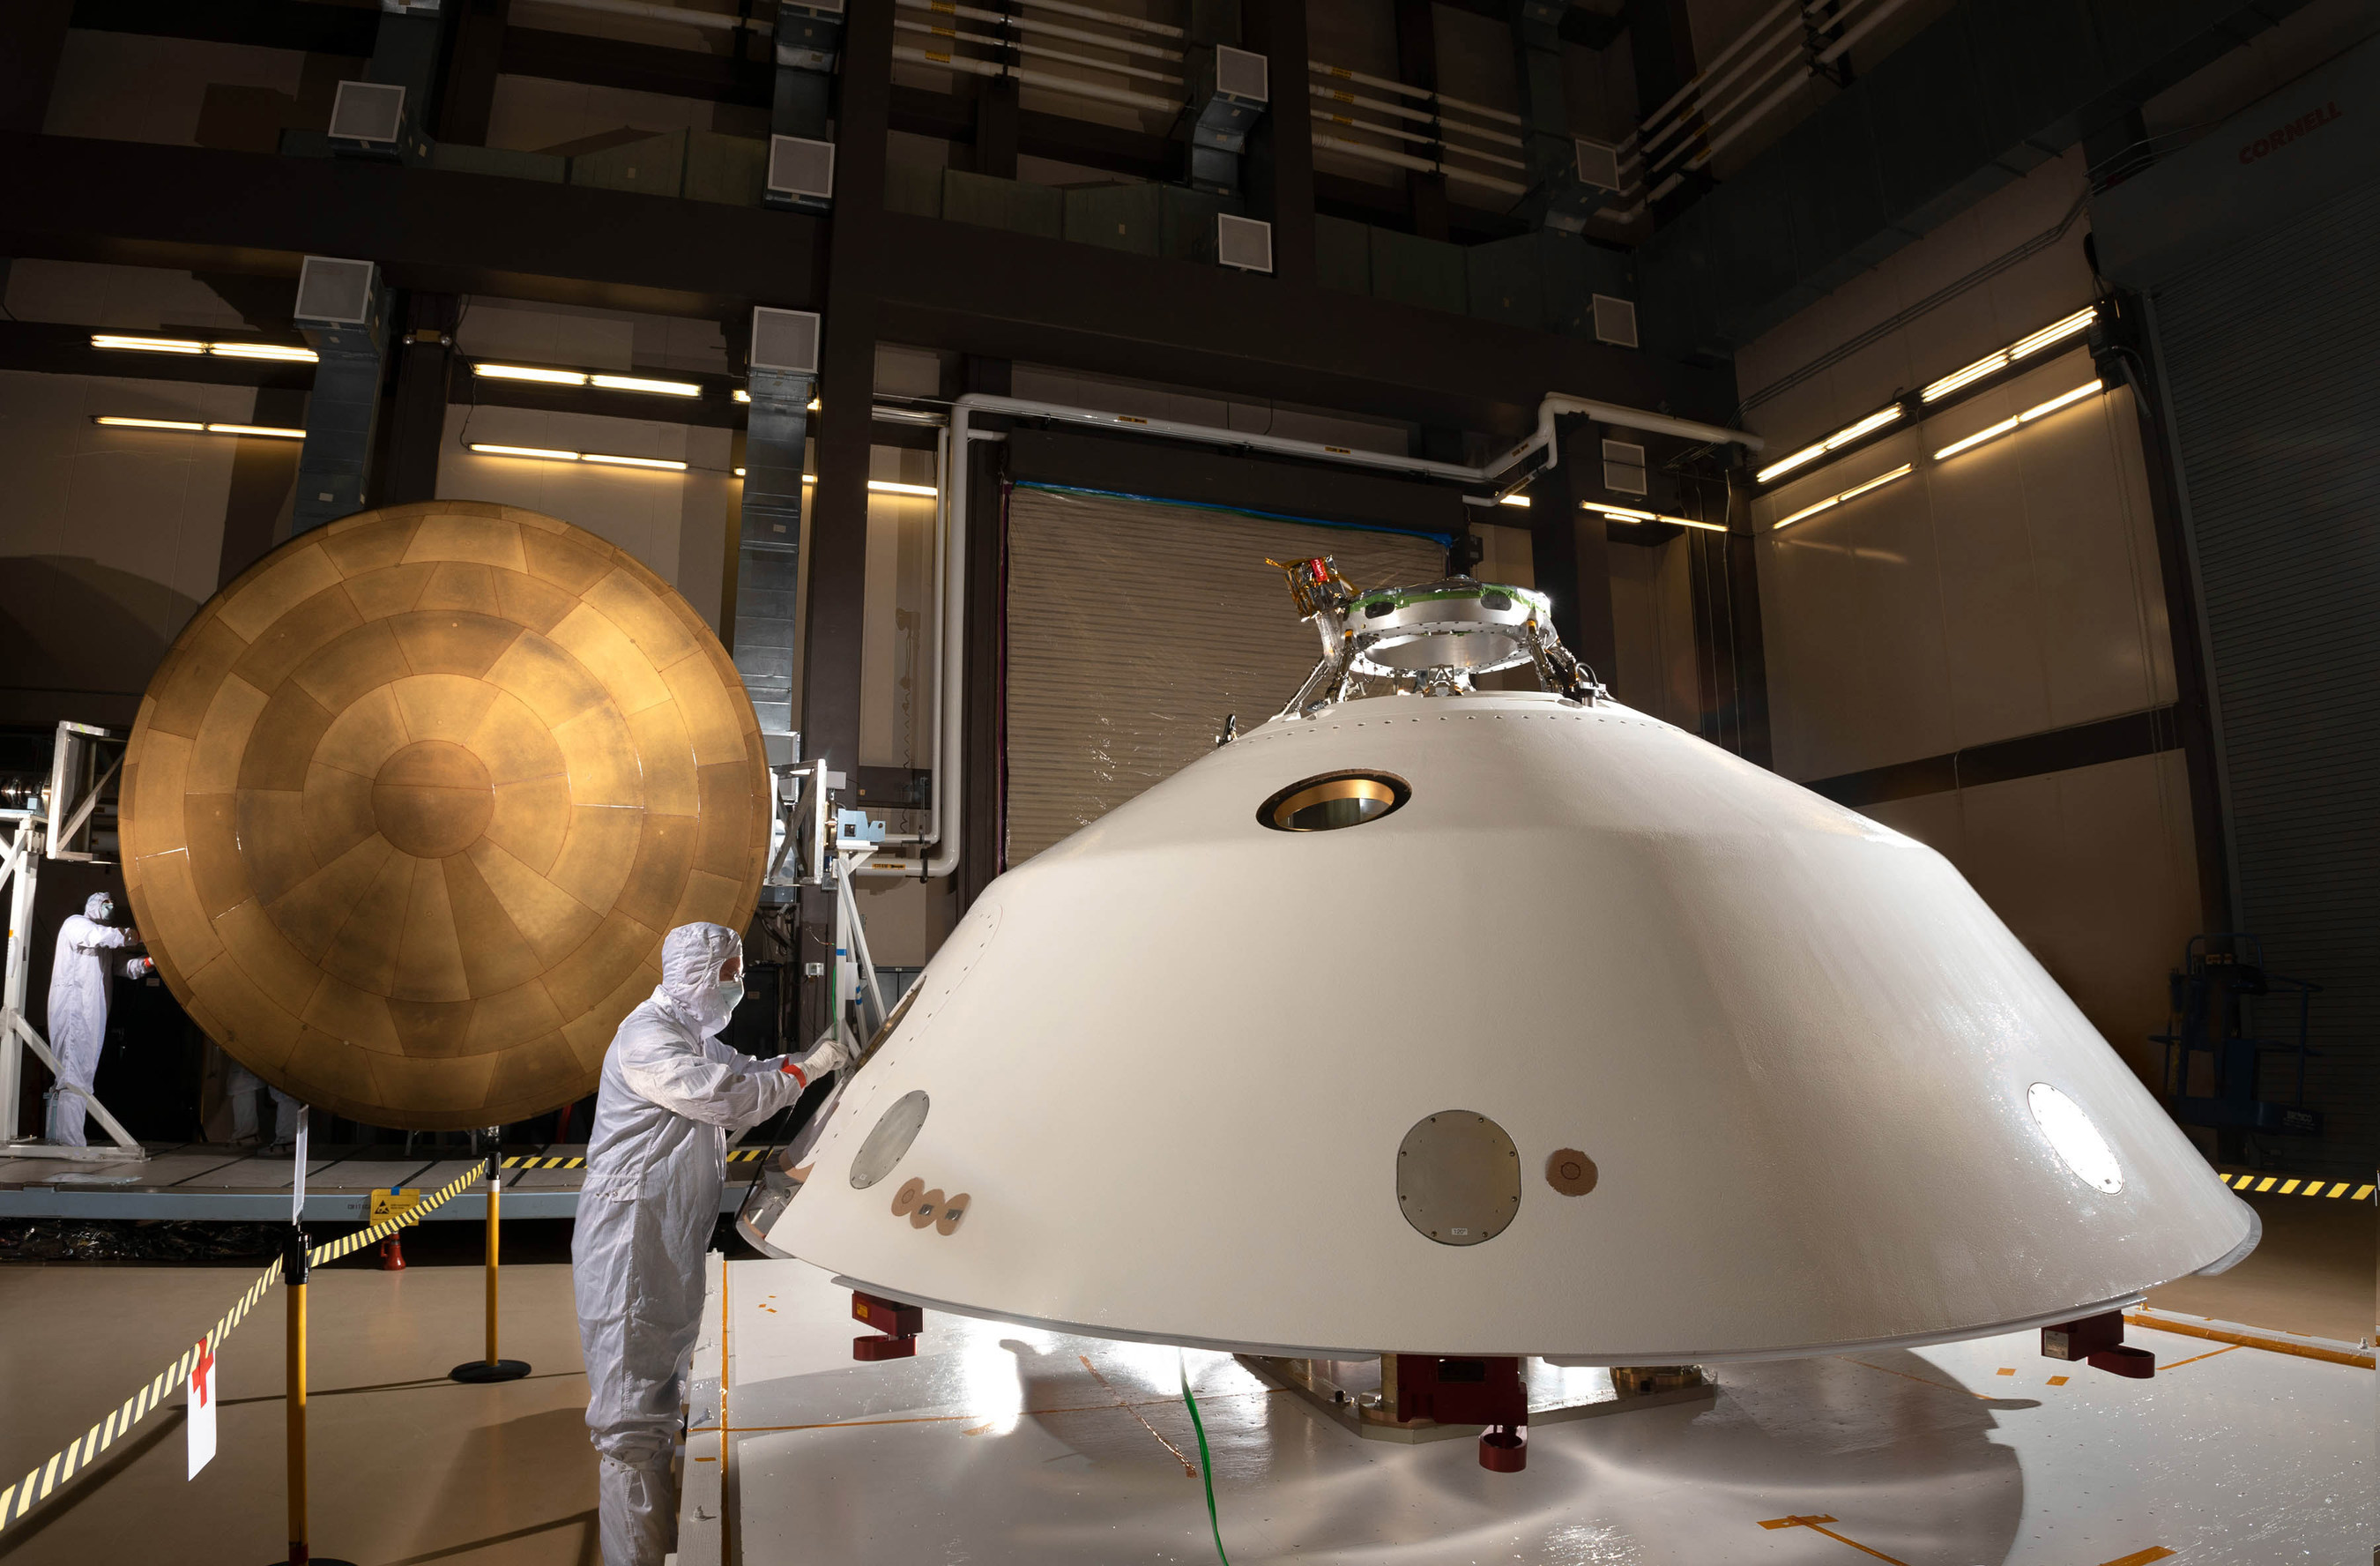 The aeroshell for the Mars 2020 rover was designed and built at Lockheed Martin Space near Denver and is comprised of two parts, the heat shield and the backshell.